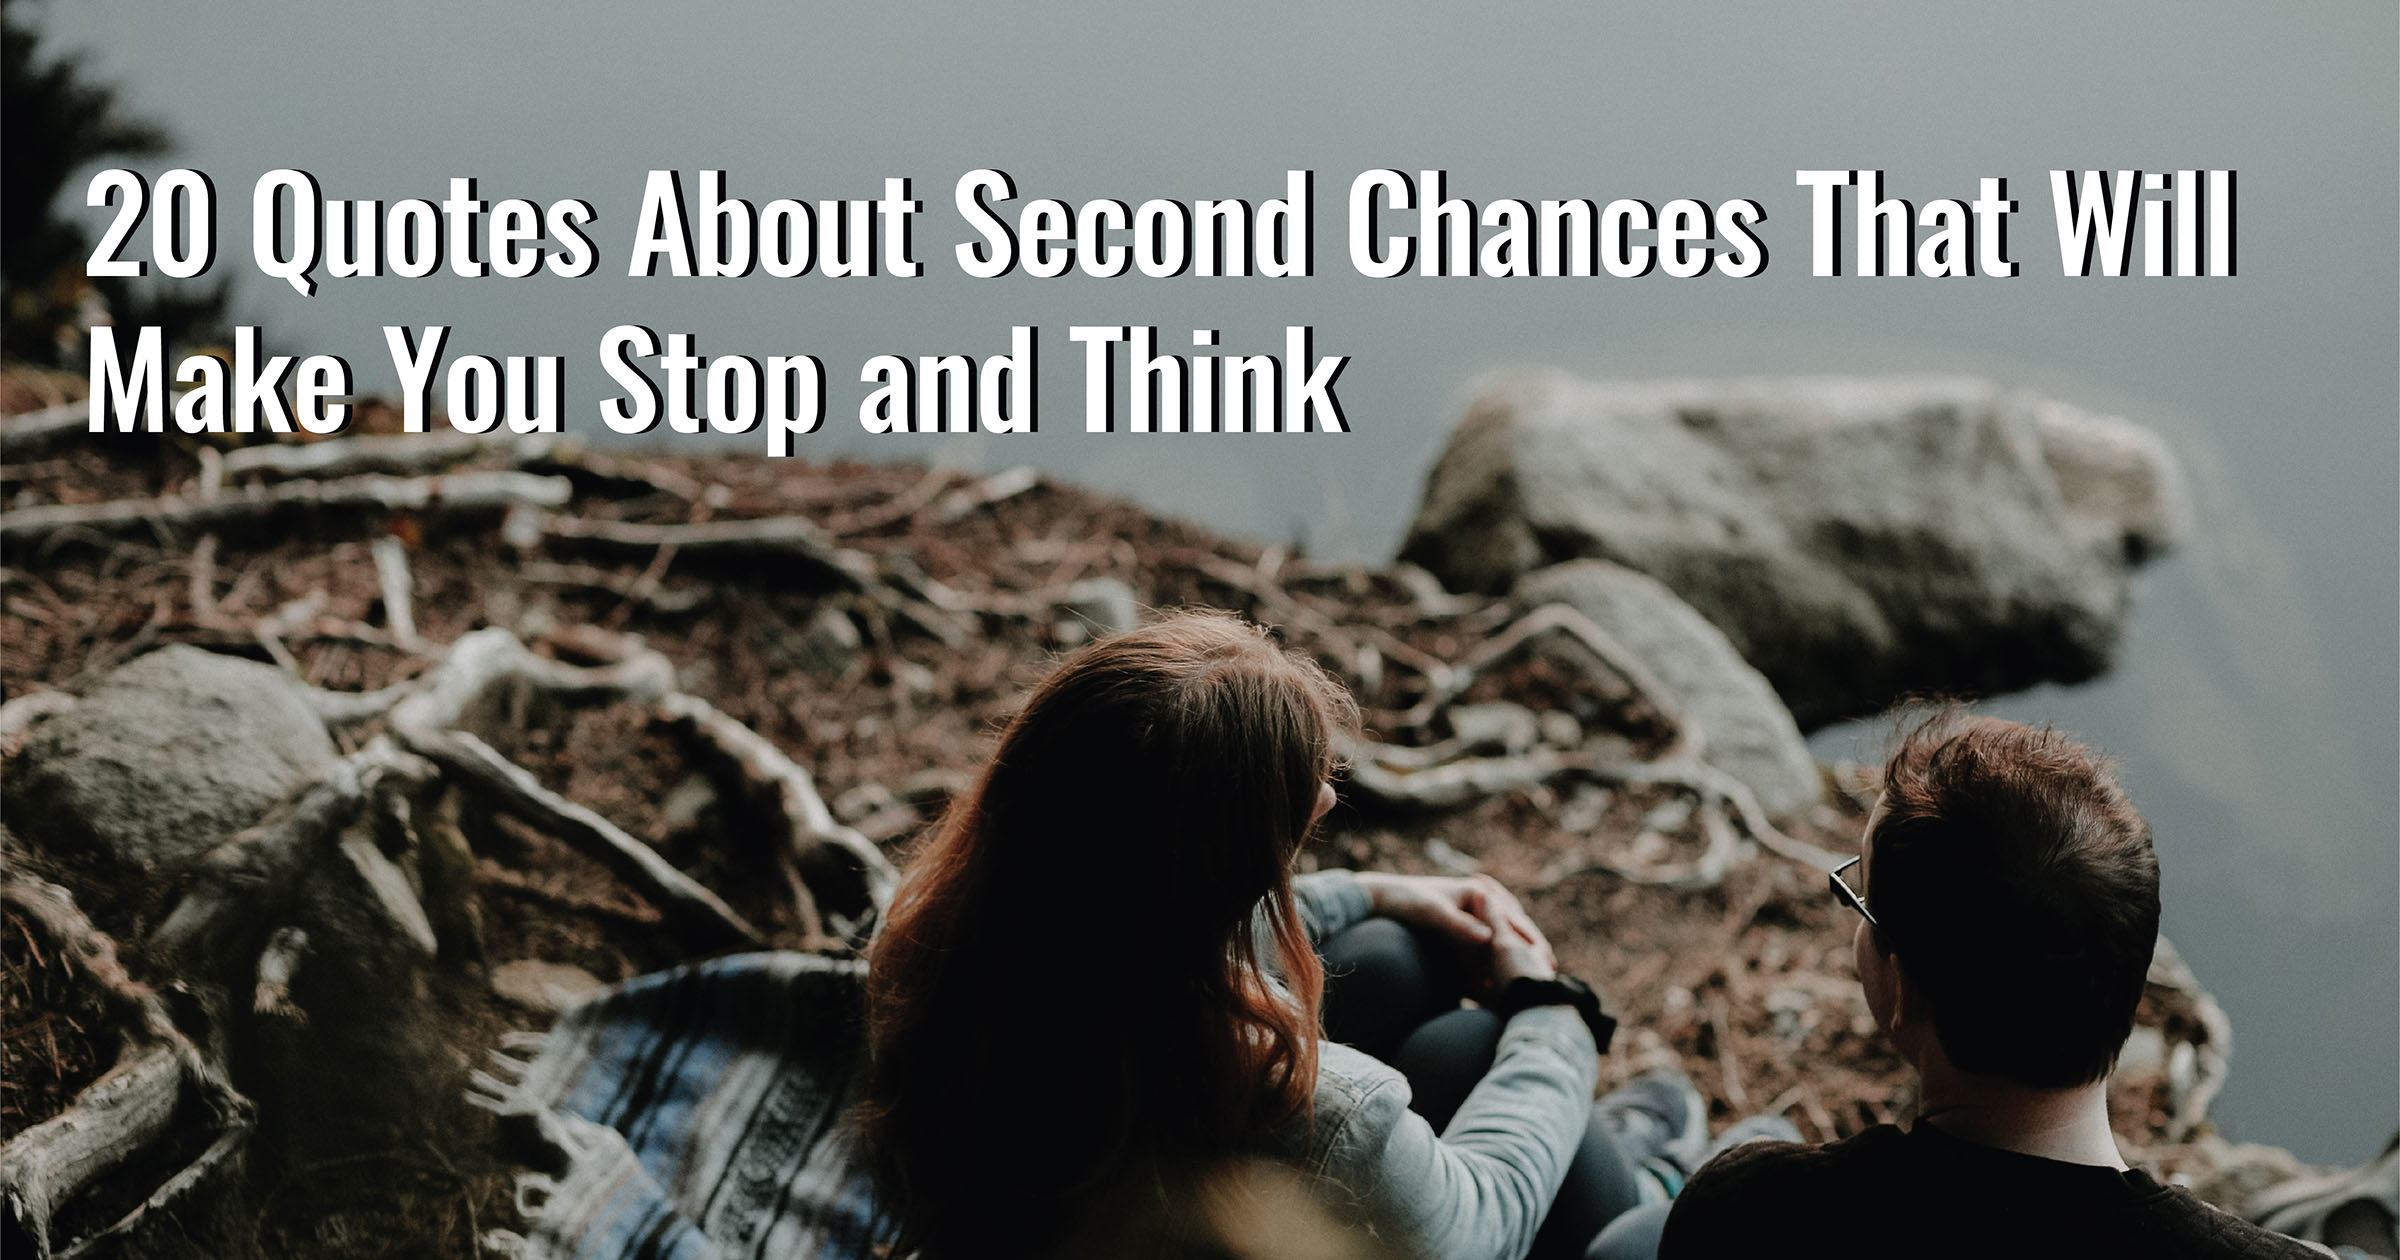 20 Quotes About Second Chances That Will Make You Stop and Think